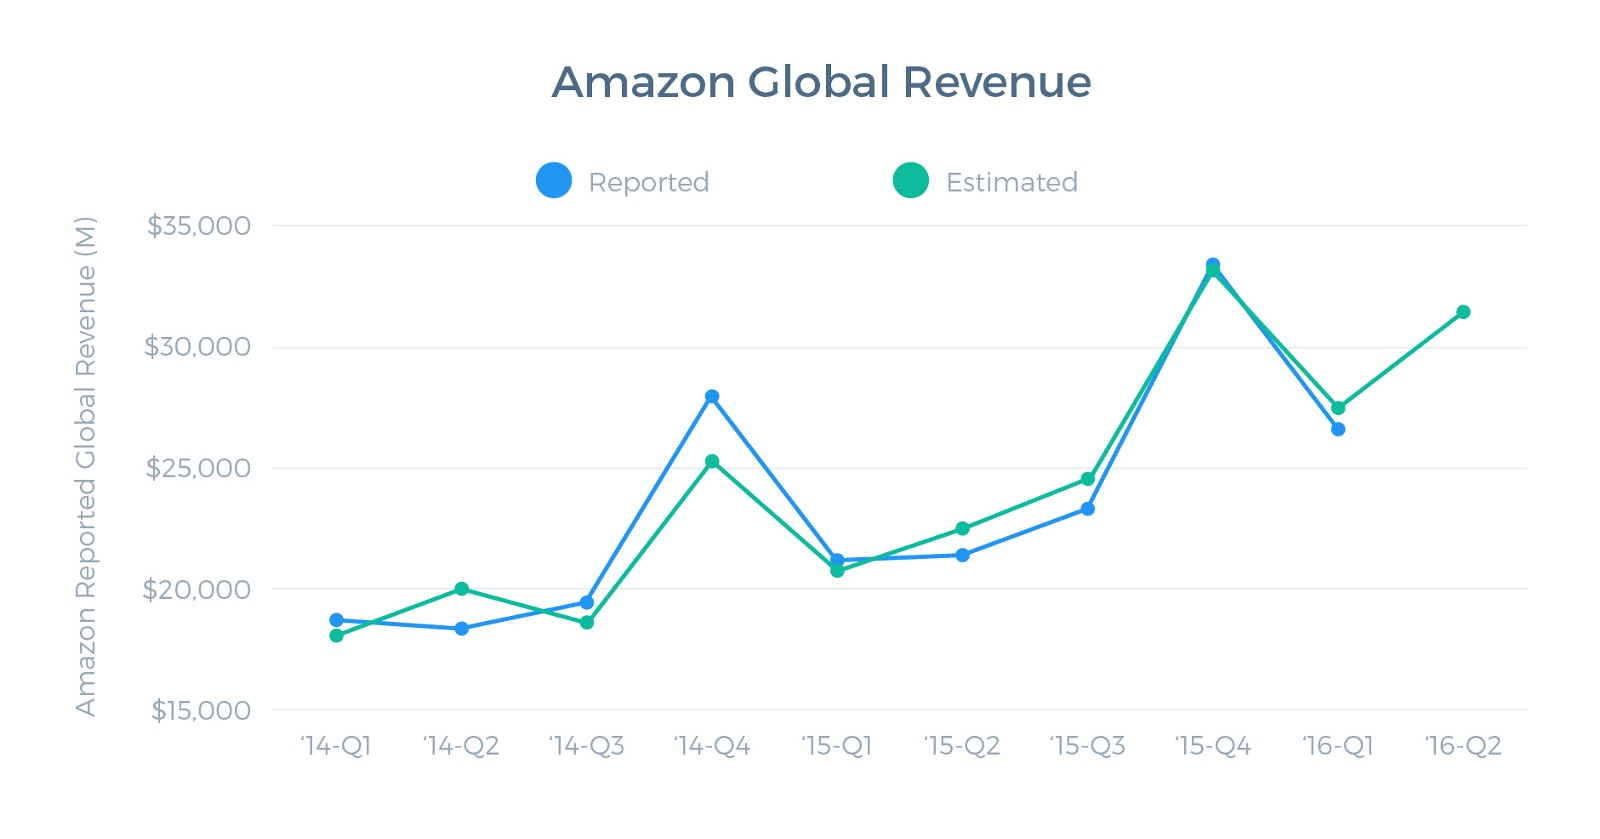 Amazon's Q2 revenue will beat analyst estimates, but by how